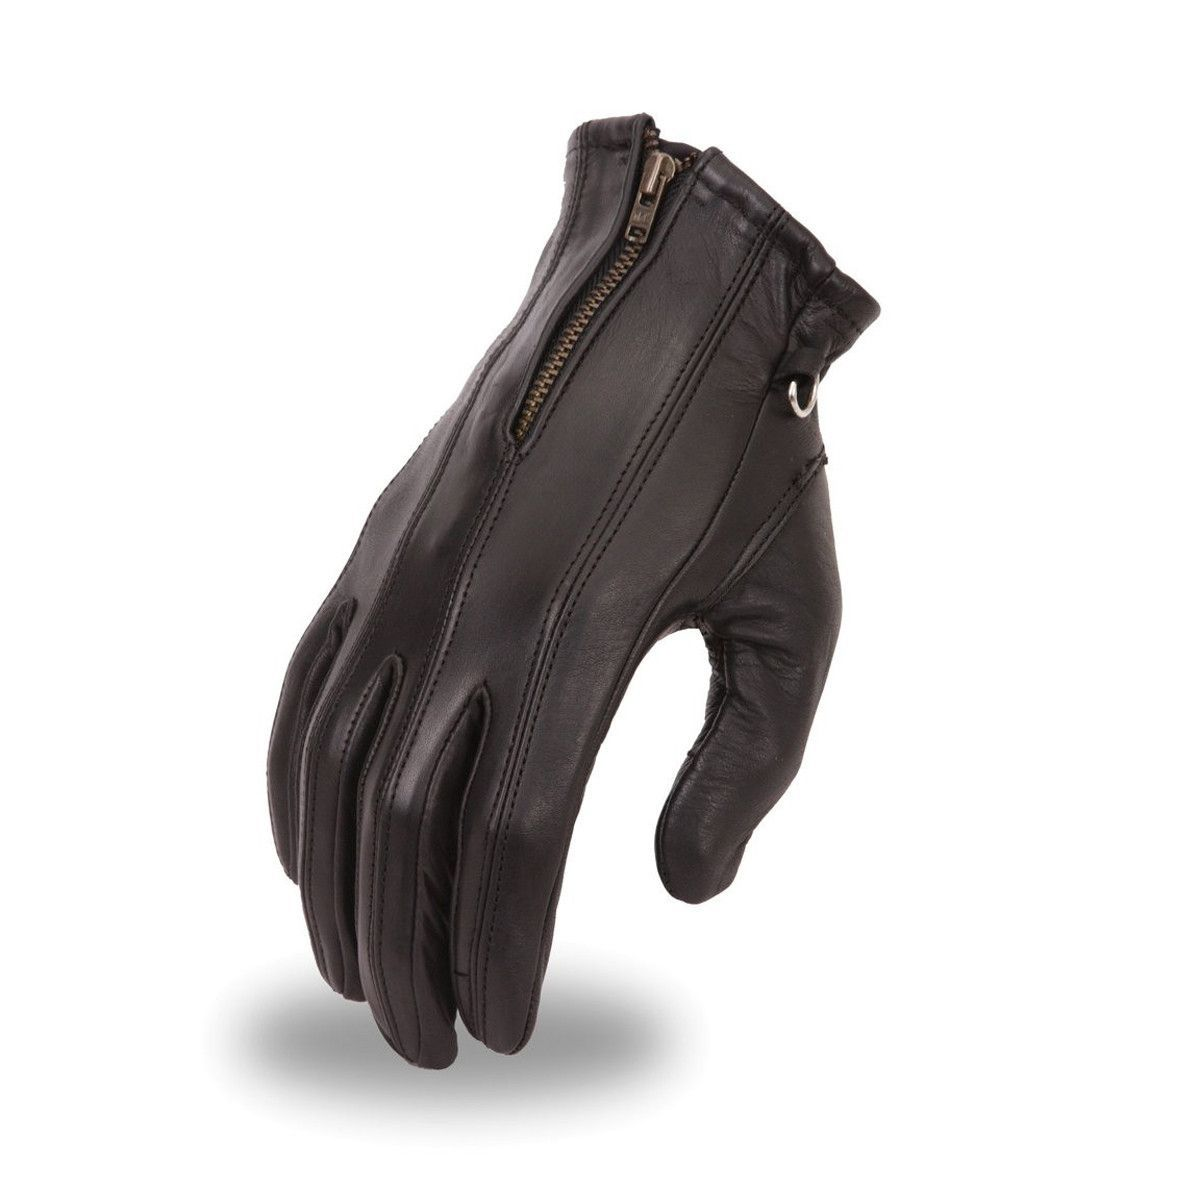 Leather driving gloves with zipper - Motorcycle Ladies Blk Soft Leather Gloves With Zipper Gel Palm